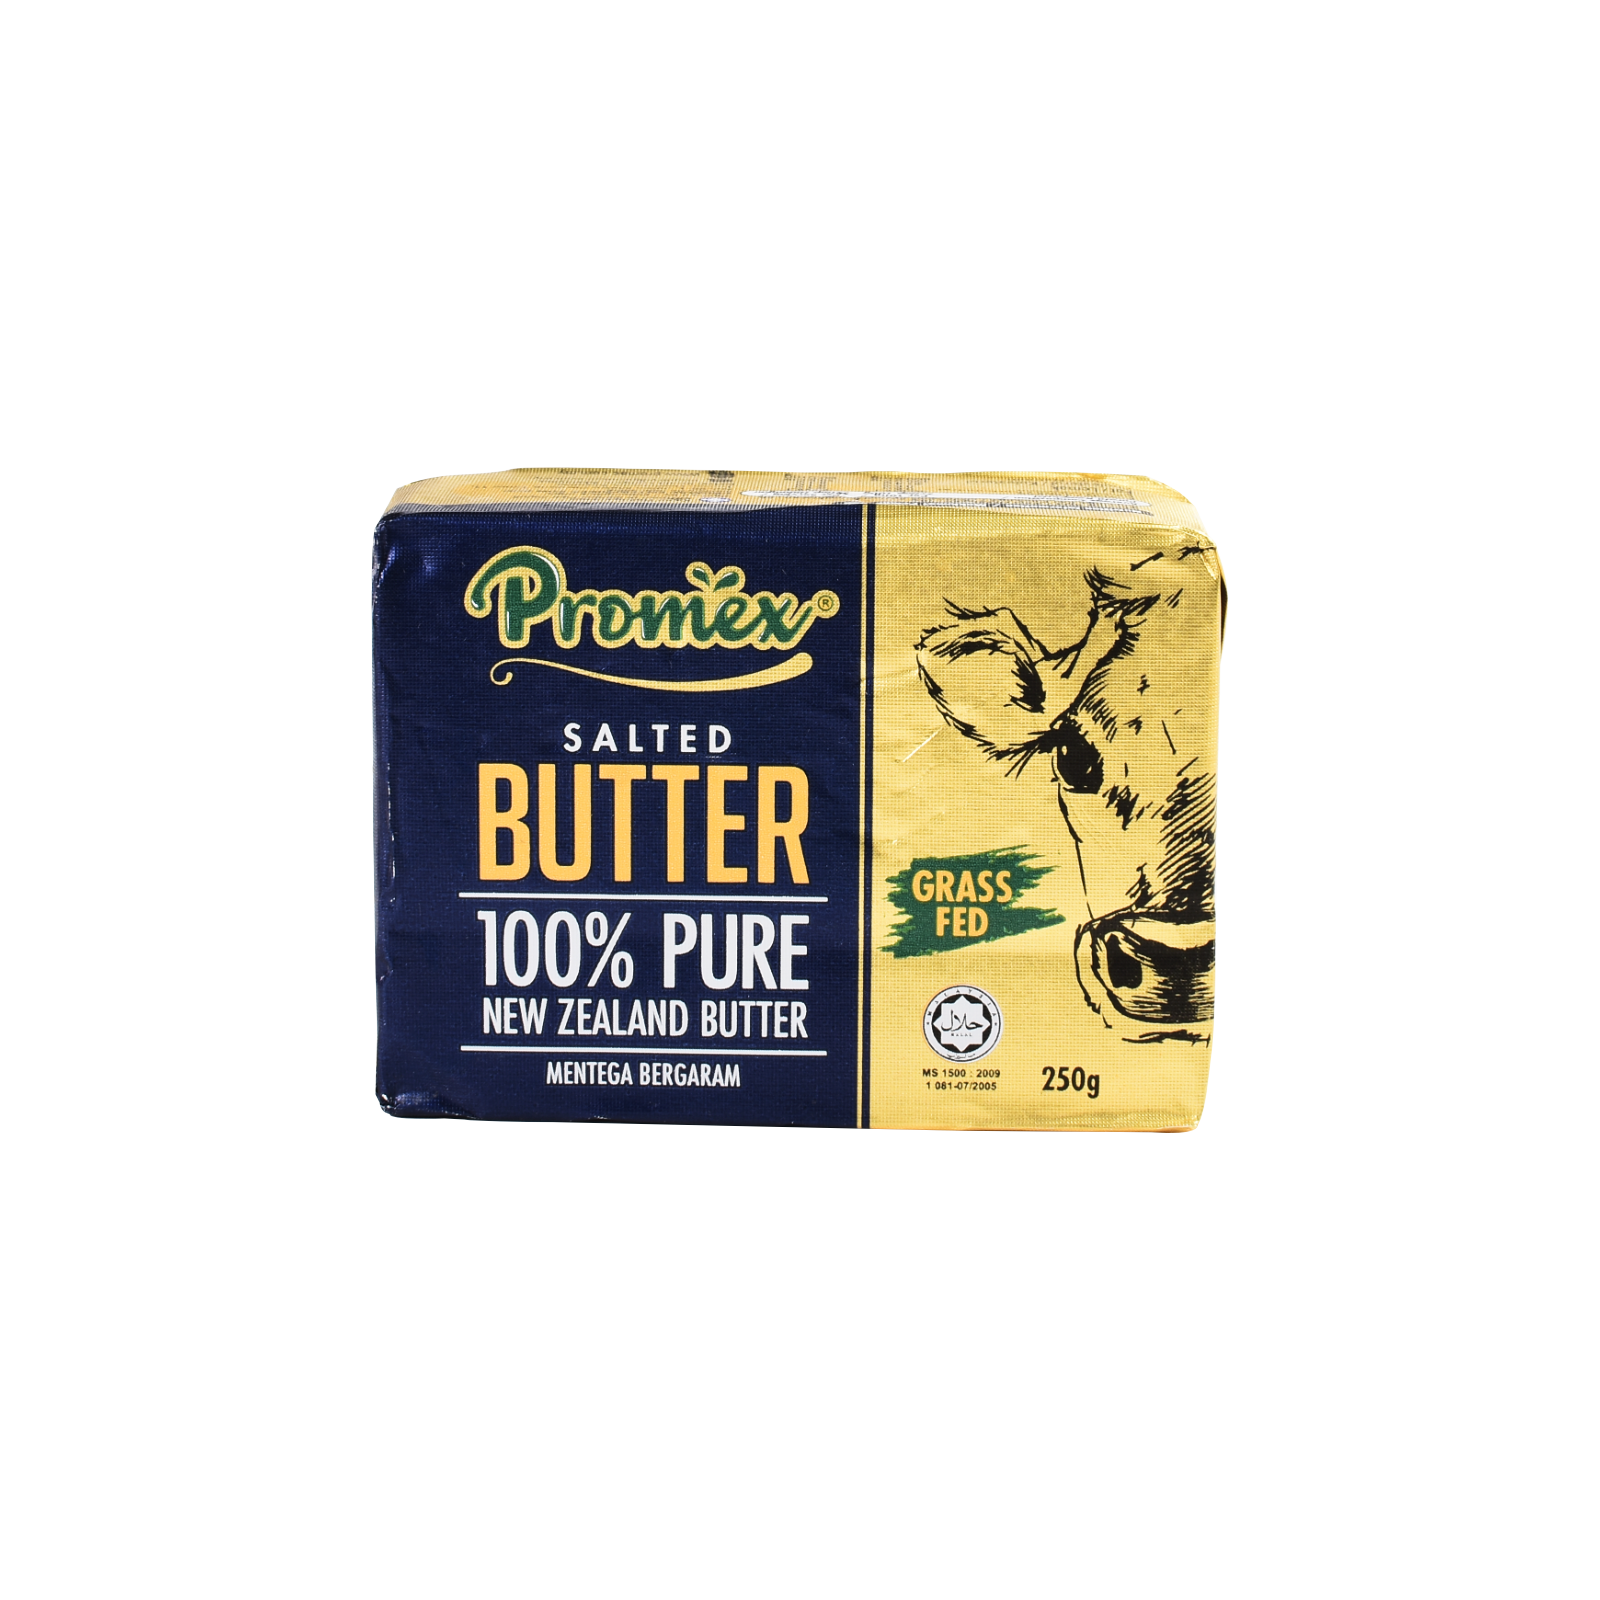 promex salted butter.png